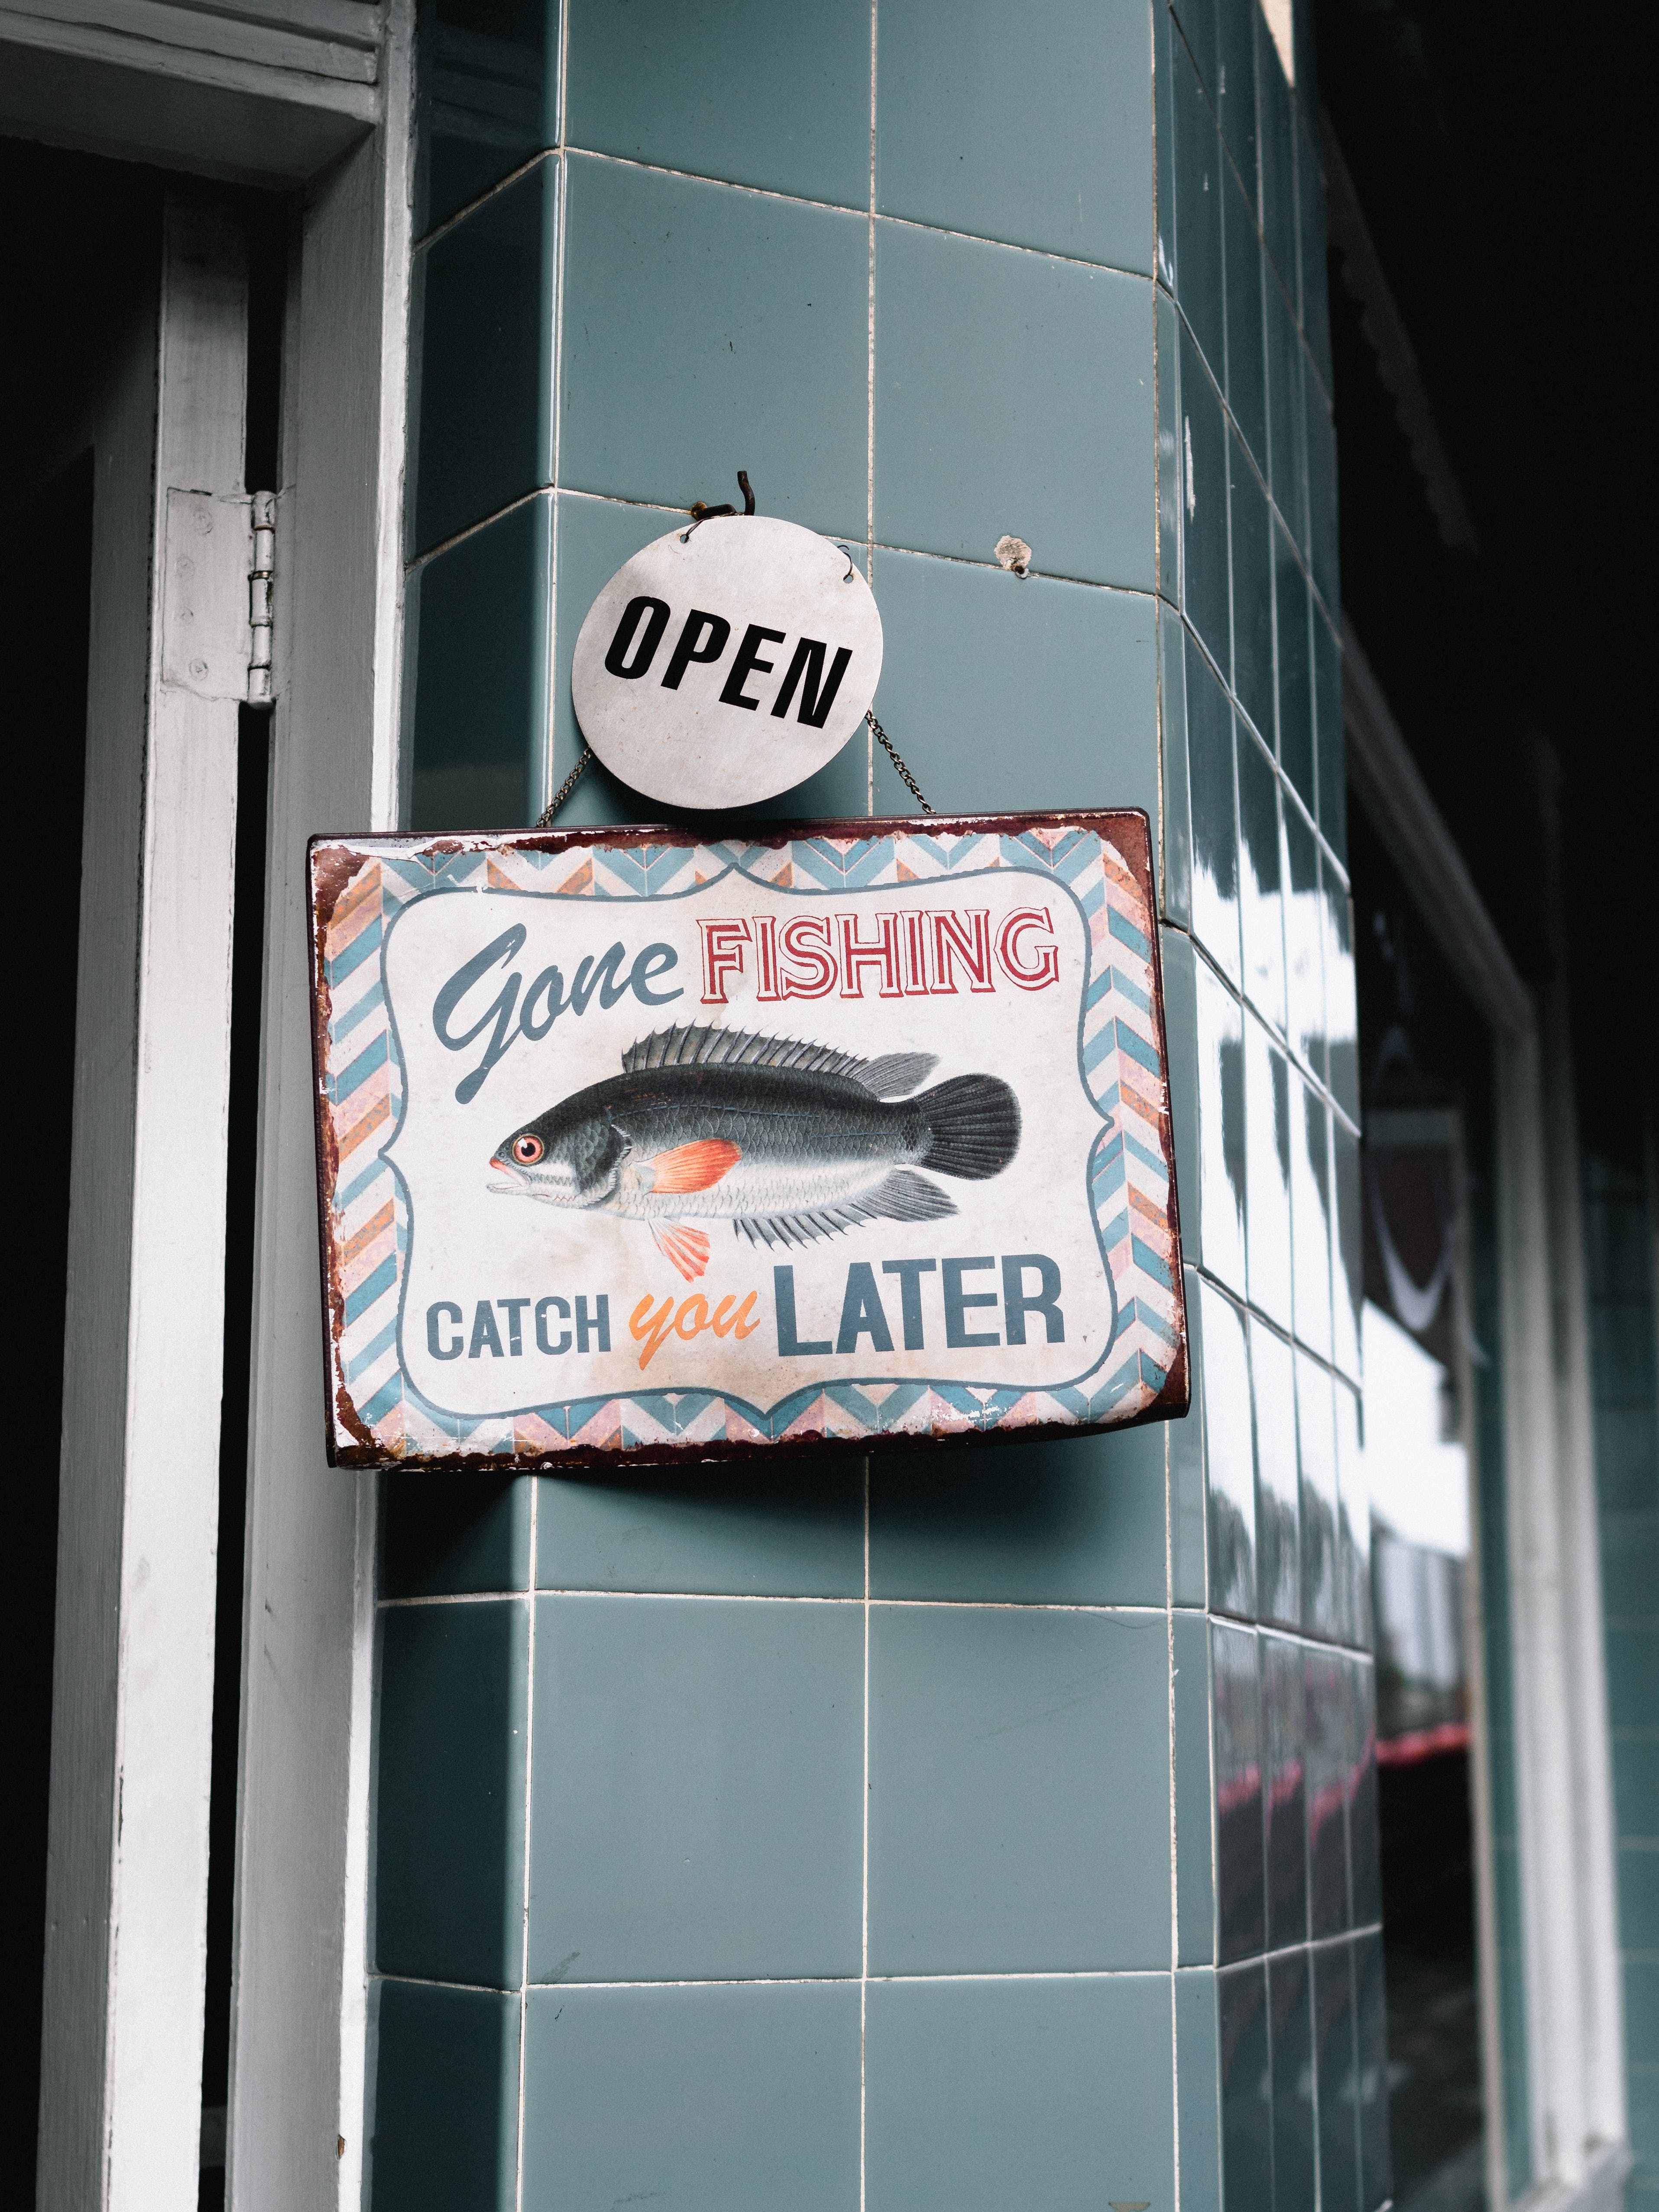 Gone Fishing Catch You Later Signage